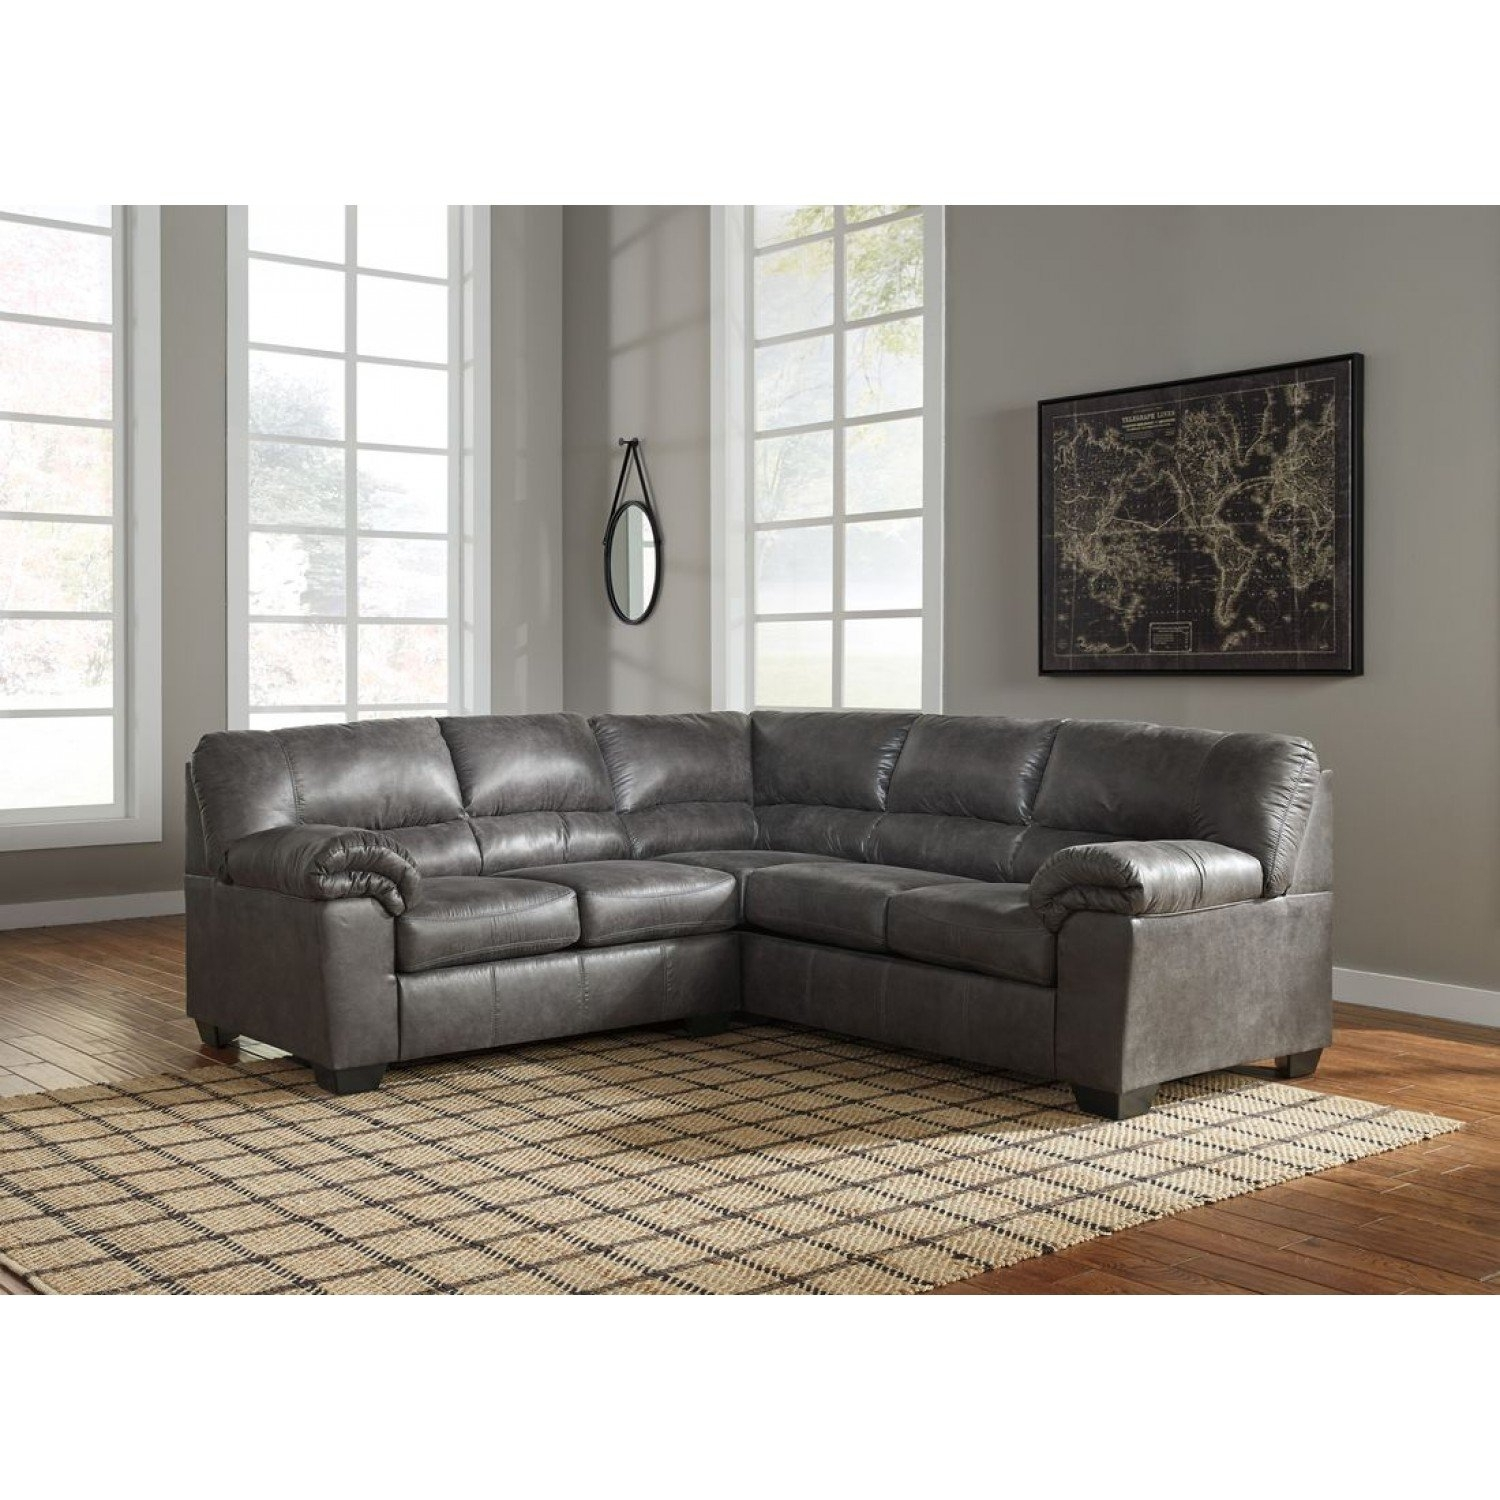 Glamor 25 Living Room With Leather Sectional Rustic intended for Glamour Ii 3 Piece Sectionals